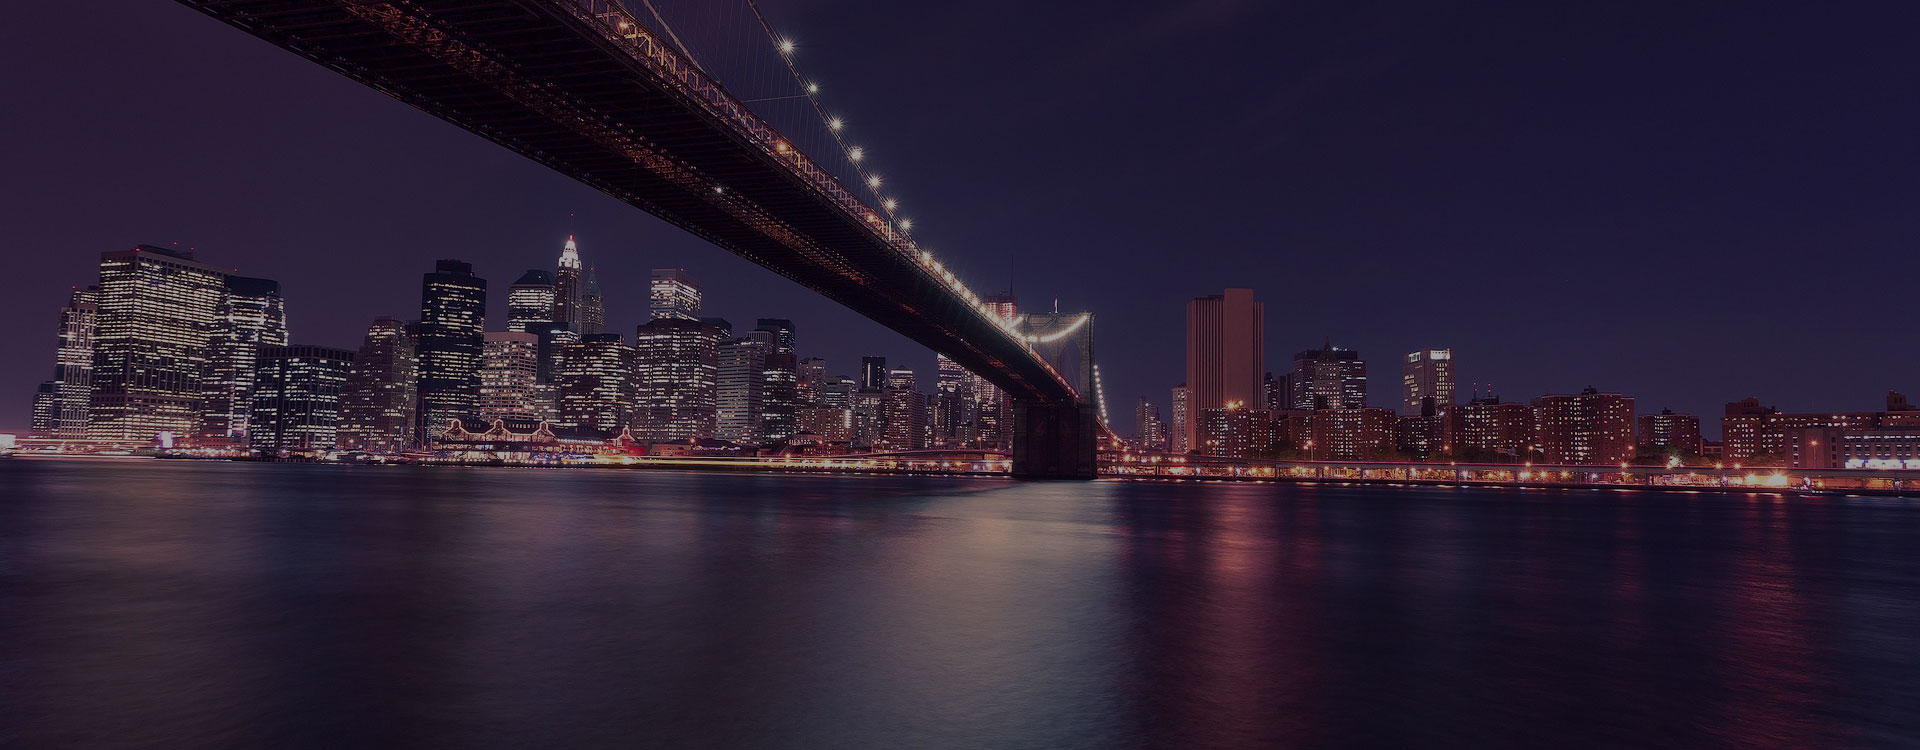 Skyline of NYC and the Brooklyn Bridge at night.